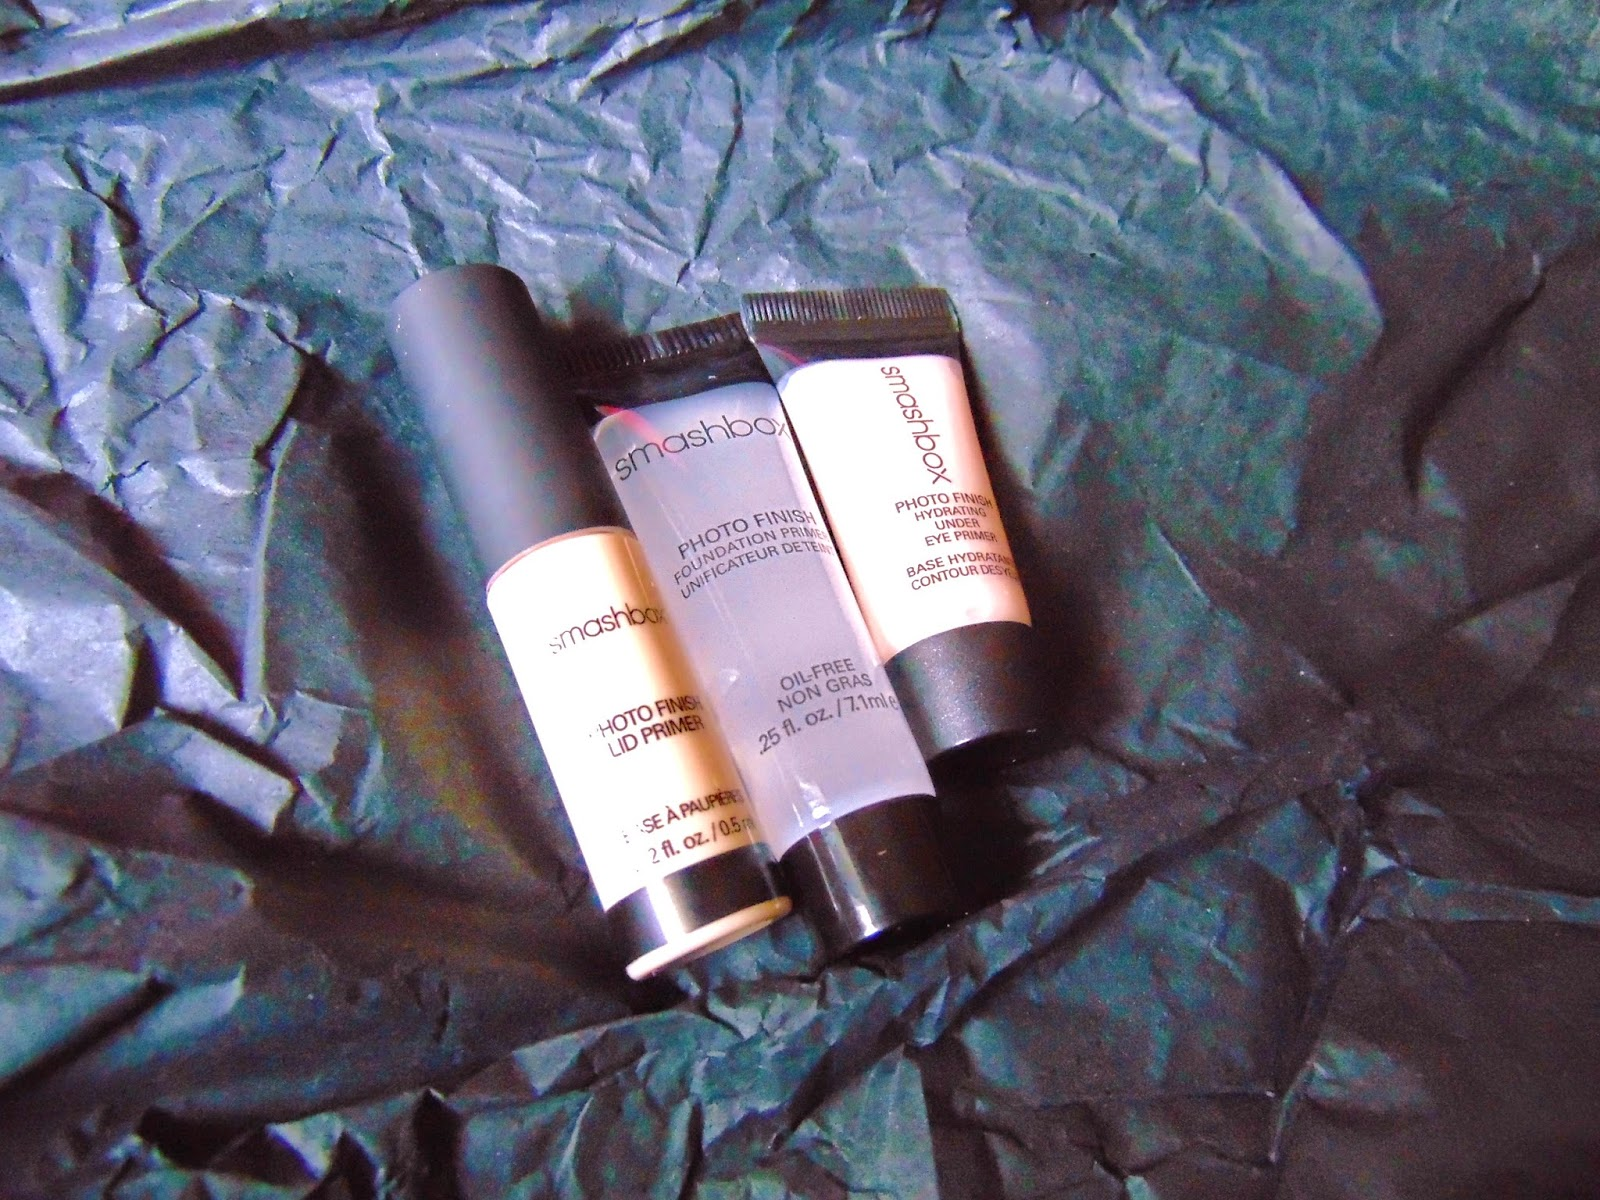 smashbox primer try it kit unboxing